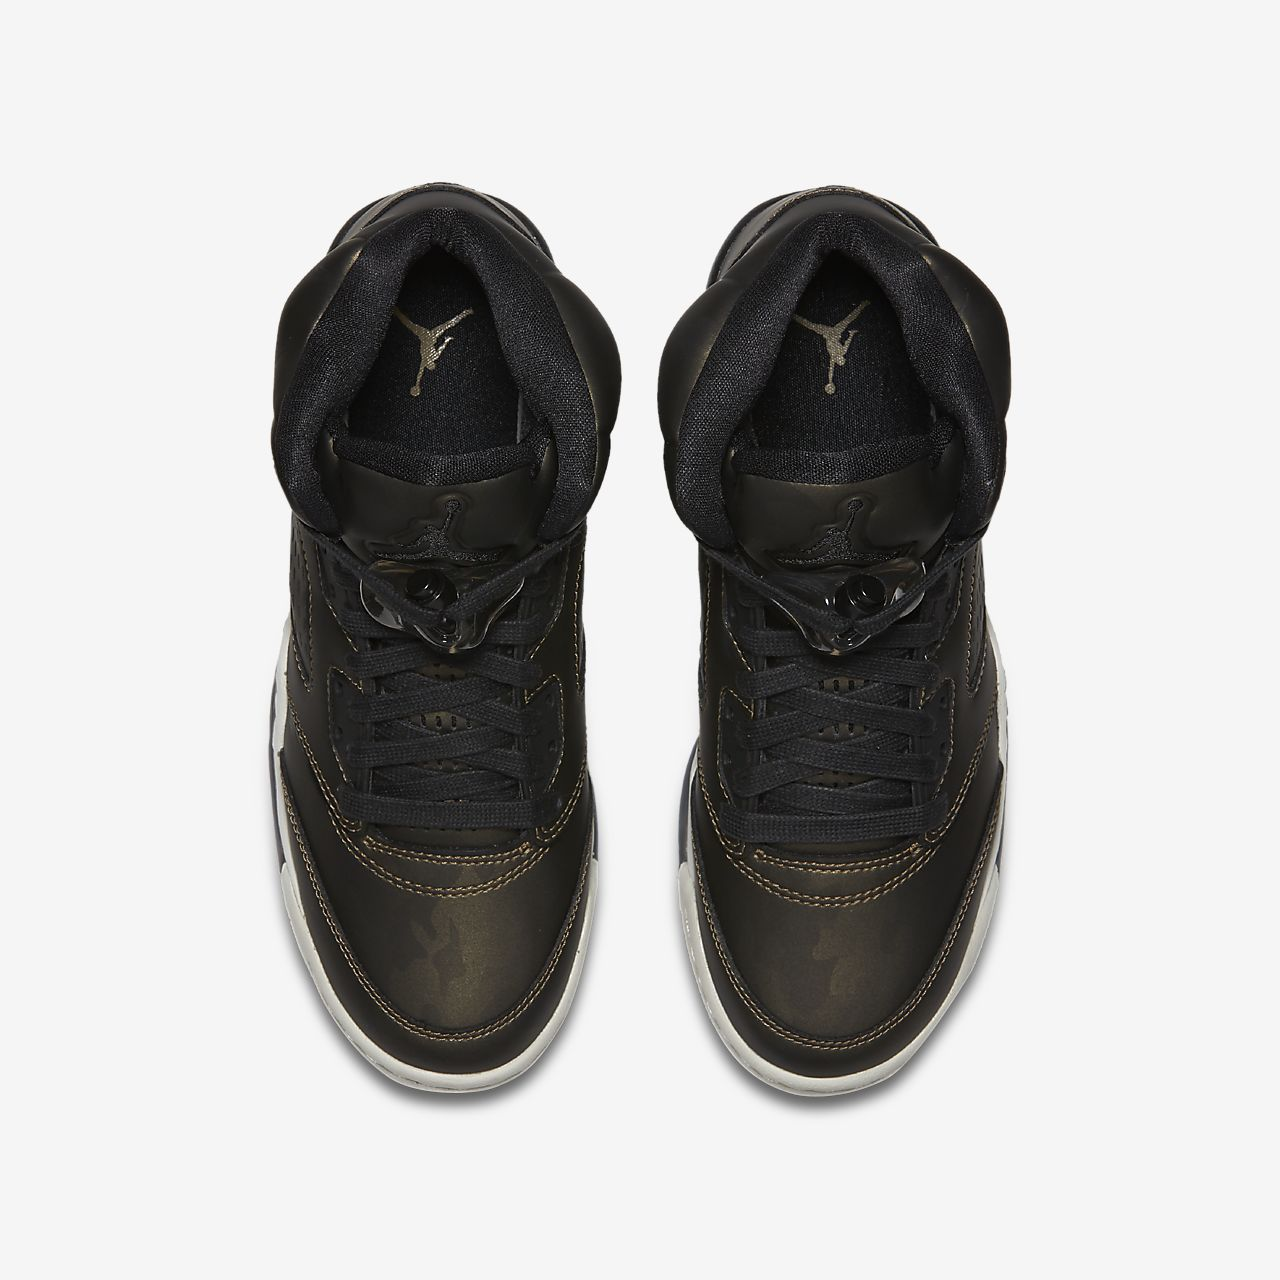 hot sale online 5aaee 4251a Air Jordan 5 Retro Premium Heiress Collection Older Kids' Shoe. Nike ...